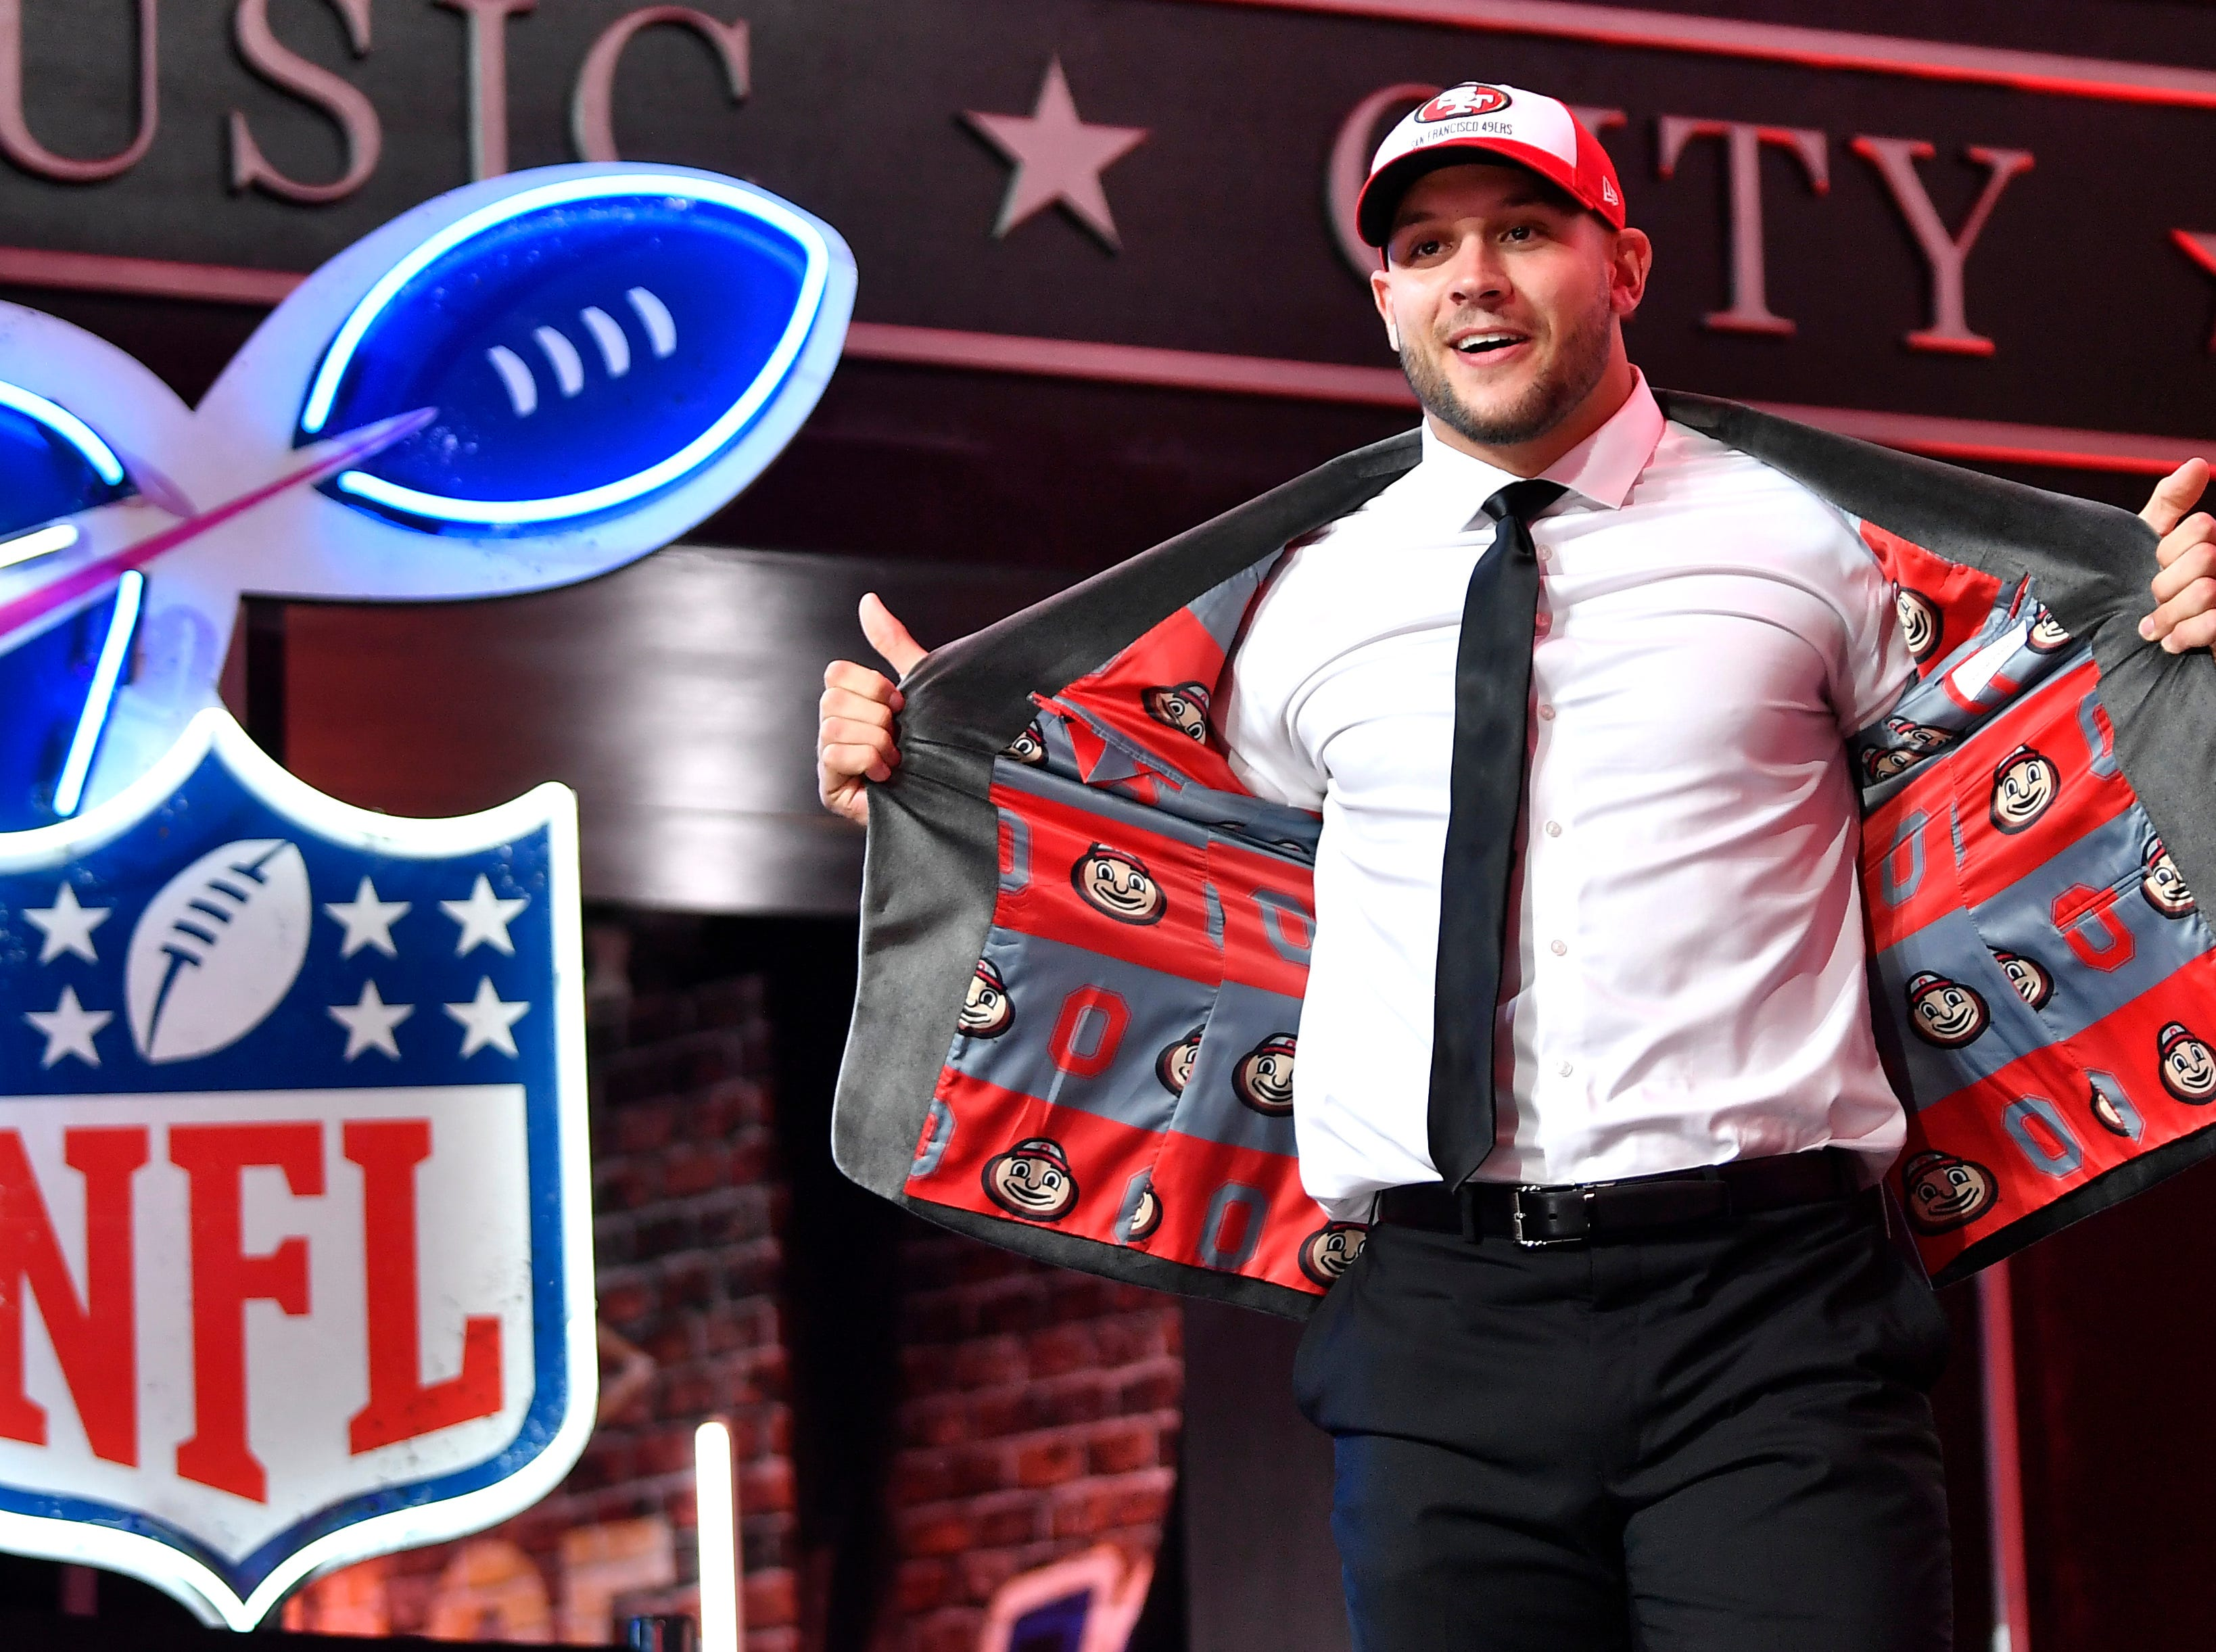 Nick Bosa walks out after being picked second in the first round by the San Francisco 49ers in the NFL Draft Thursday, April 25, 2019, in Nashville, Tenn.